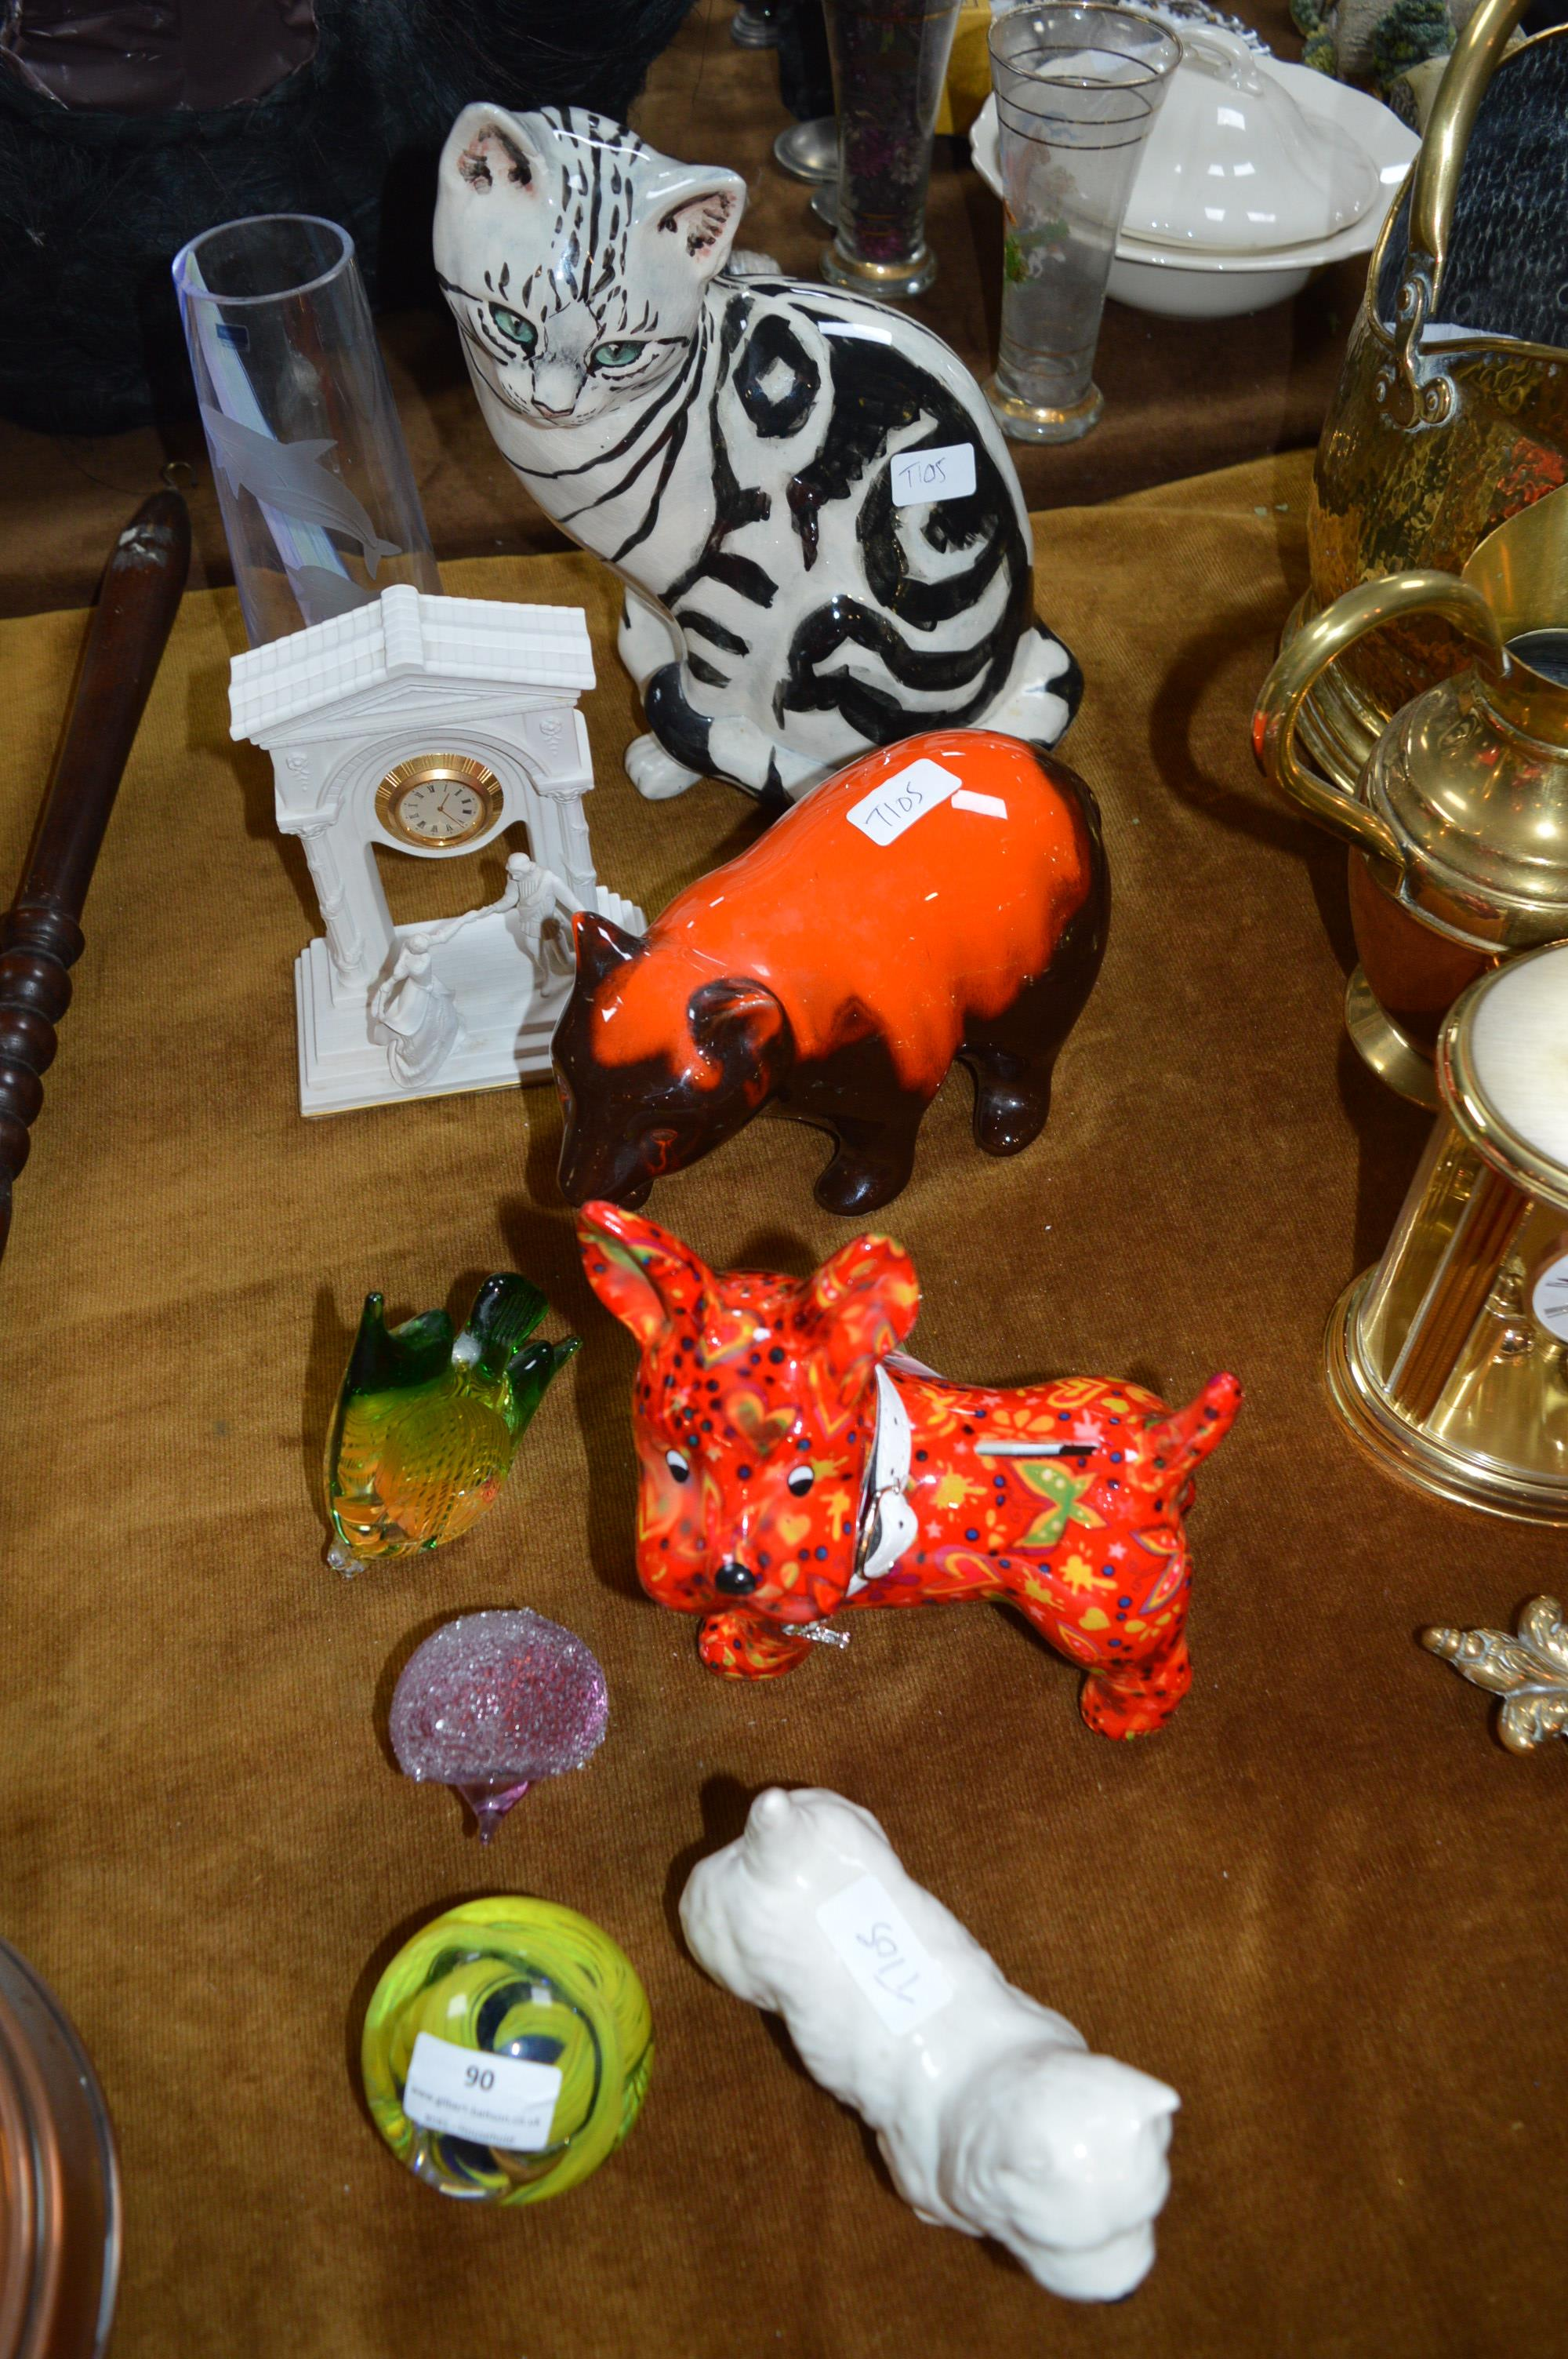 Lot 90 - Collection of Pottery Cats, Scottie Dogs, and Glas